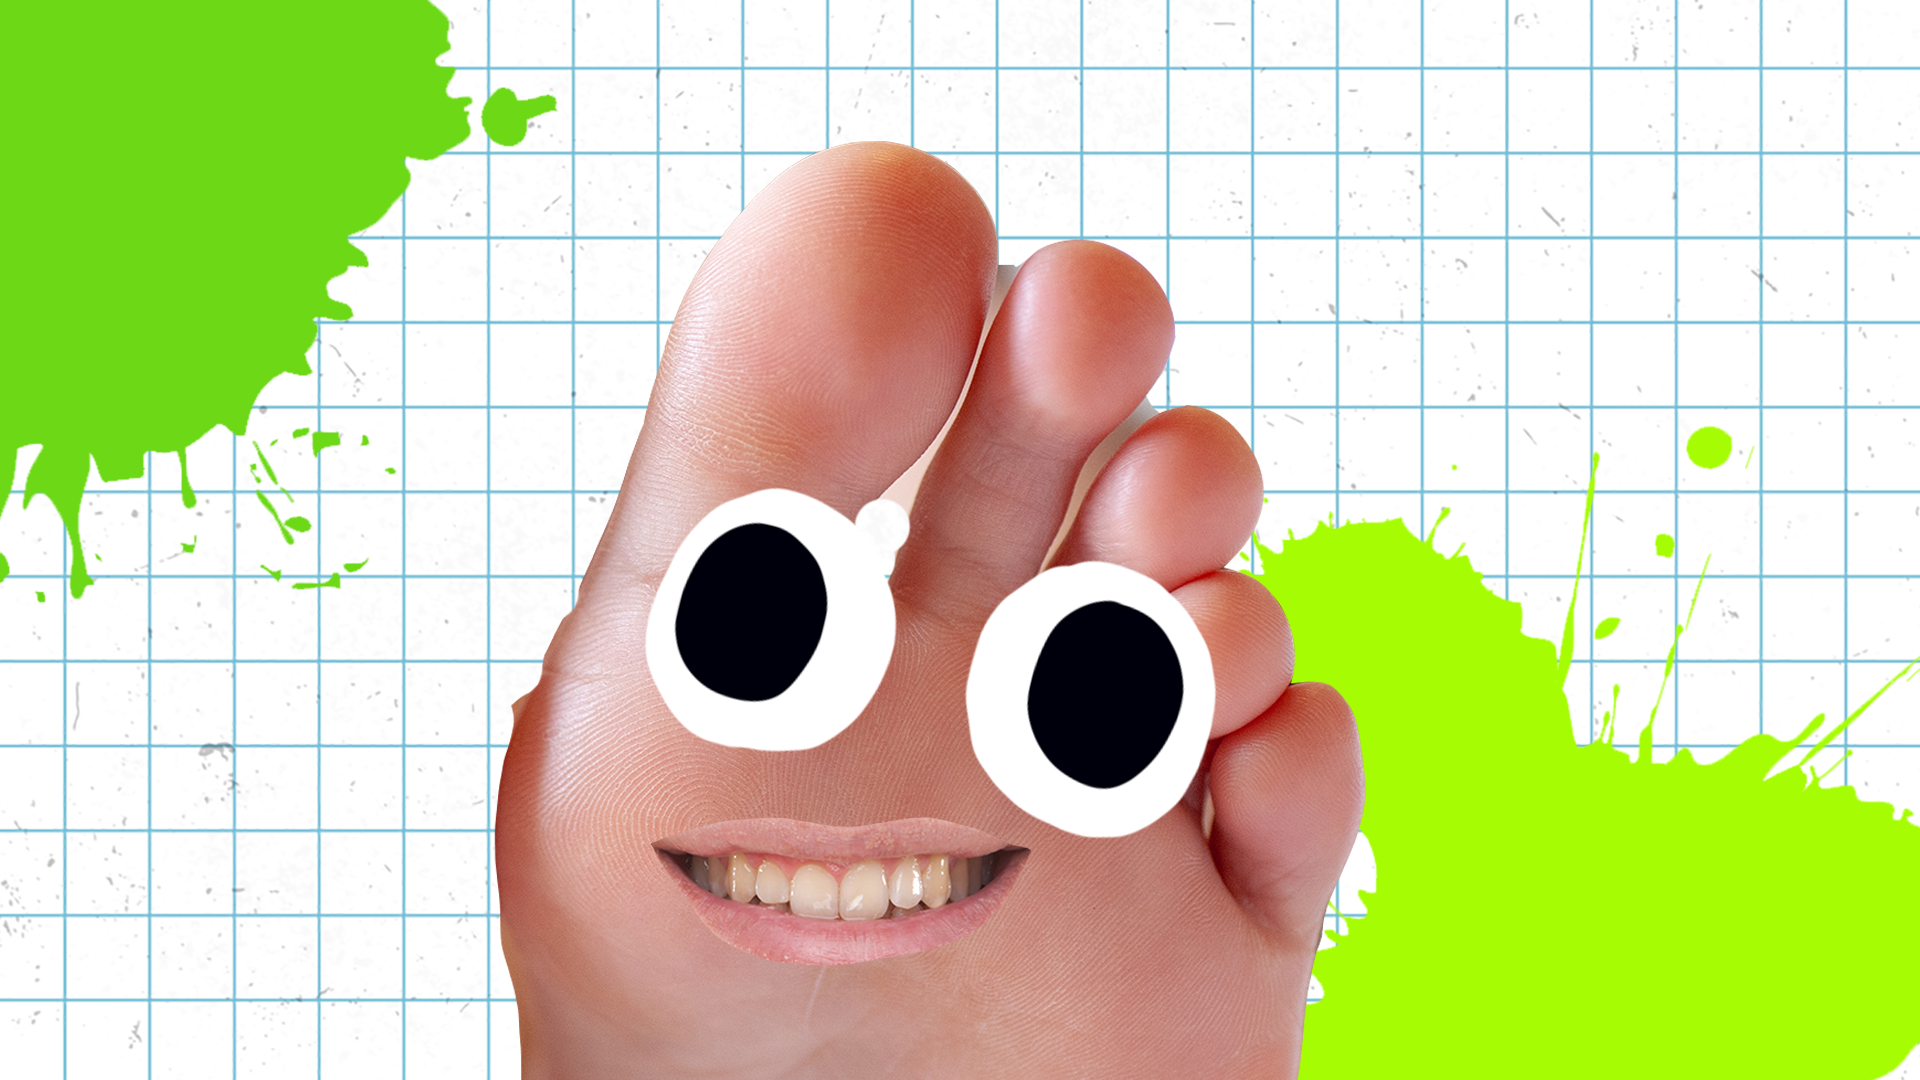 A smiling foot